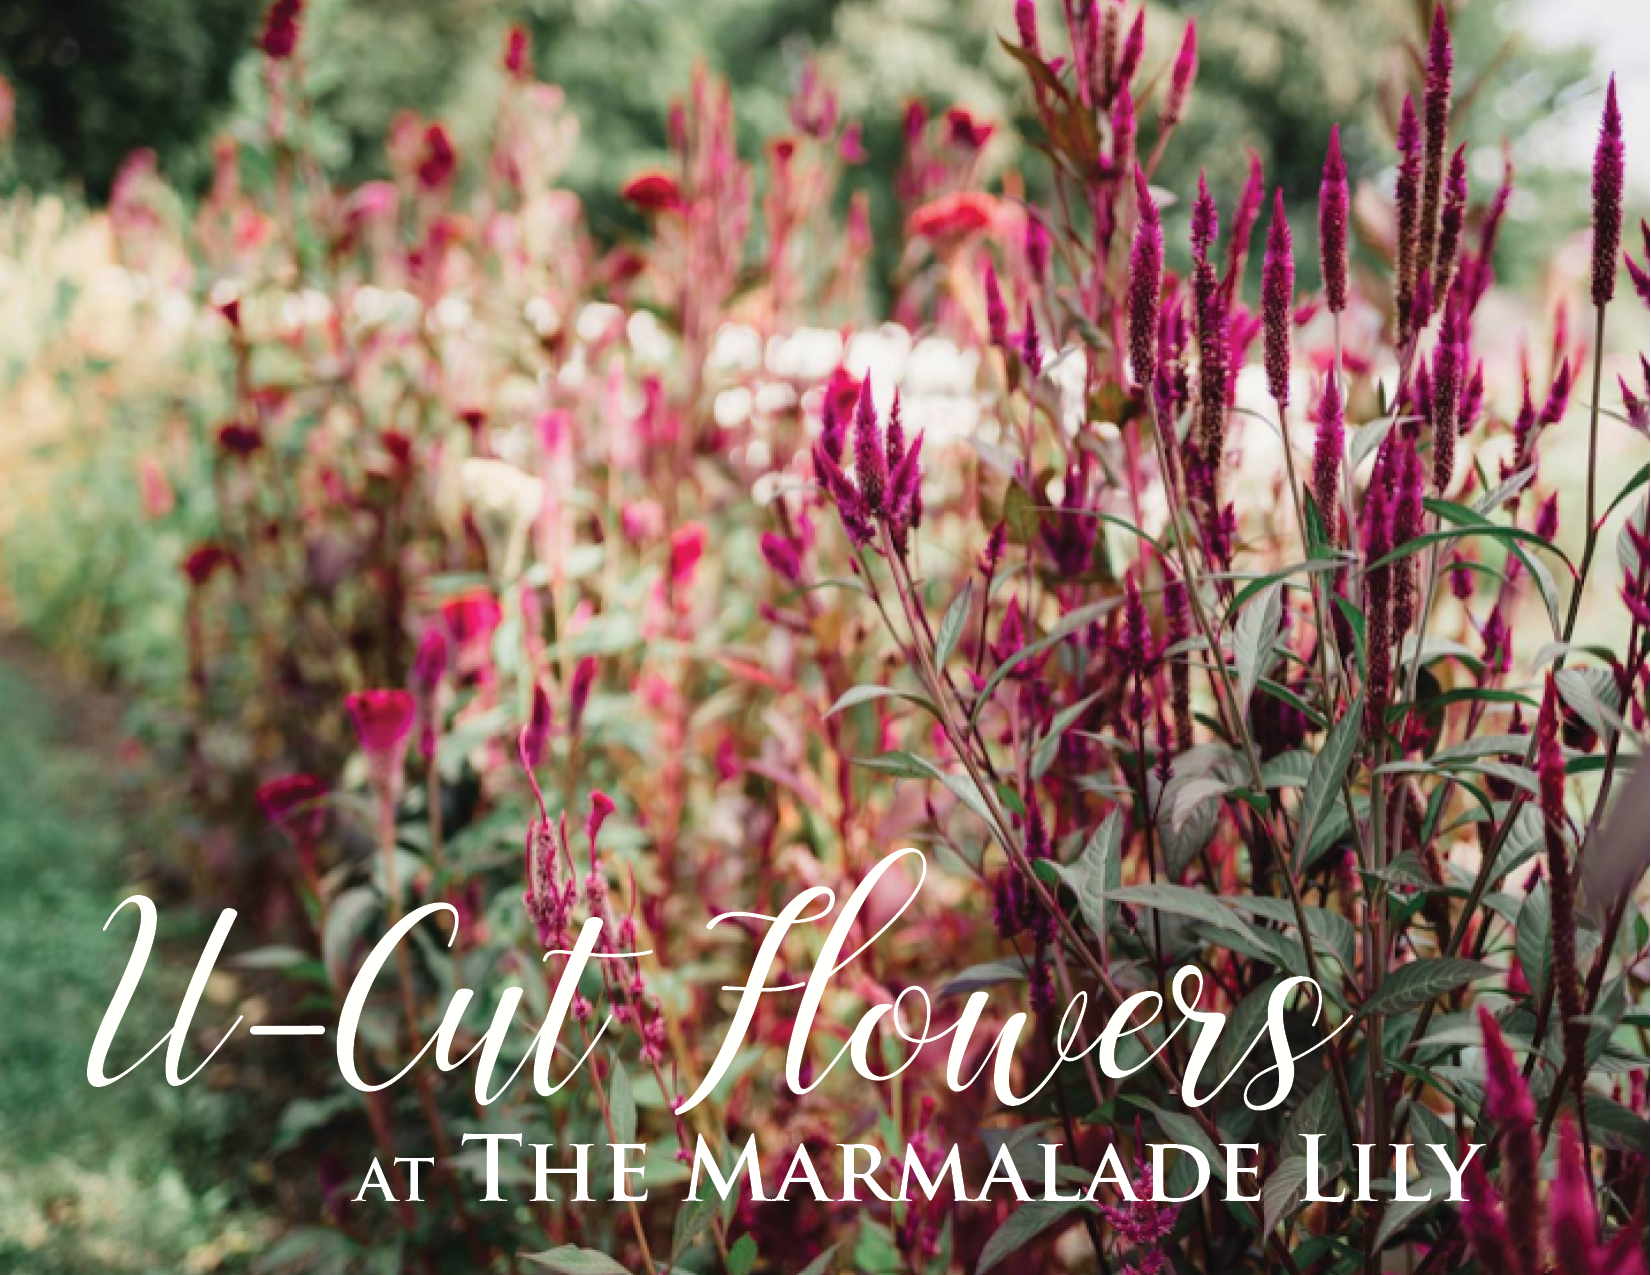 Join us for u-cut flowers in the gardens!  At The Marmalade Lily, we have a weekly selection of seasonal flowers available. You will be greeted with a basket, clippers, and a tour of the fresh blooms available! Bring your favorite vase to arrange your flowers or have your bouquet wrapped to go. Pricing is per stem and typically ranges from $0.50 to $4.00. Parking is complimentary.  Reservations not required, but please email or call ahead for groups larger than 6 (themarmaladelily@ gmail.com/5136046561 ).  Our projected availability is updated weekly on Mondays.  Projected Availability: Ammi Astrantia Bachelor Buttons Chocolate Cosmos Dill Godetia Gomphrena Hydrangea (limited) Lisianthus (limited) Mountain Mint Nigella pods Ninebark Penstemmon Salvia Snapdragons Veronica Yarrow Zinnia (limited)  And during the month of July, take a photo at The Marmalade U-Cuts, post it to Facebook or Instagram using the hashtag  #themarmaladelilyflowers , and you will be entered into a drawing for a $15 gift card to a future u-cut event!  Plus, we will have yoga by  Yoga de la Soul and pilates by Club Pilates on rotation beginning at 7 pm! Payment is by donation. More information  here .  June-August yoga & pilates dates are set below:  June 20 yoga June 27 pilates July 4 closed July 11 pilates July 18 yoga July 25 pilates August 1 yoga August 8 pilates August 15 yoga August 22 closed August 29 yoga